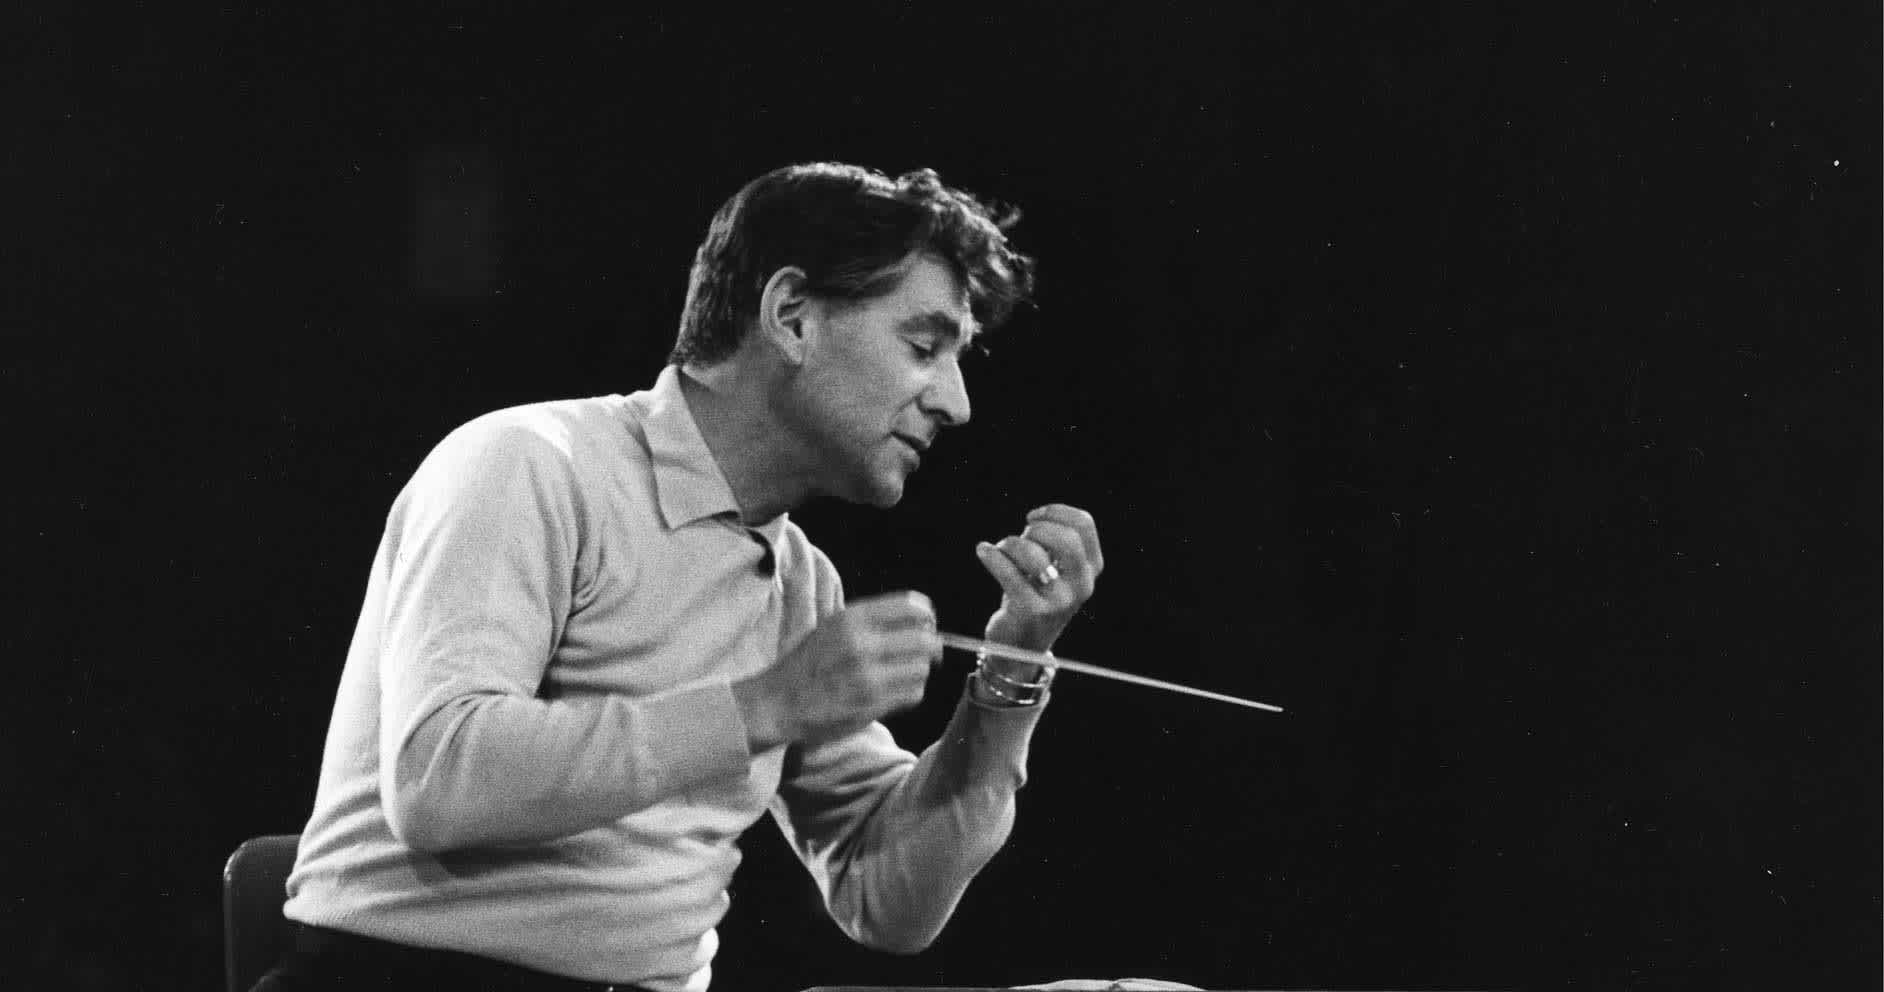 "a biography of leonard bernstein a musician ""seymour bernstein triumphs at the piano"" the new york times born in newark, new jersey, seymour bernstein was already teaching piano at the age of fifteen, his teacher at the time, clara husserl, having arranged for him to supervise the practicing of some of her gifted younger pupils."